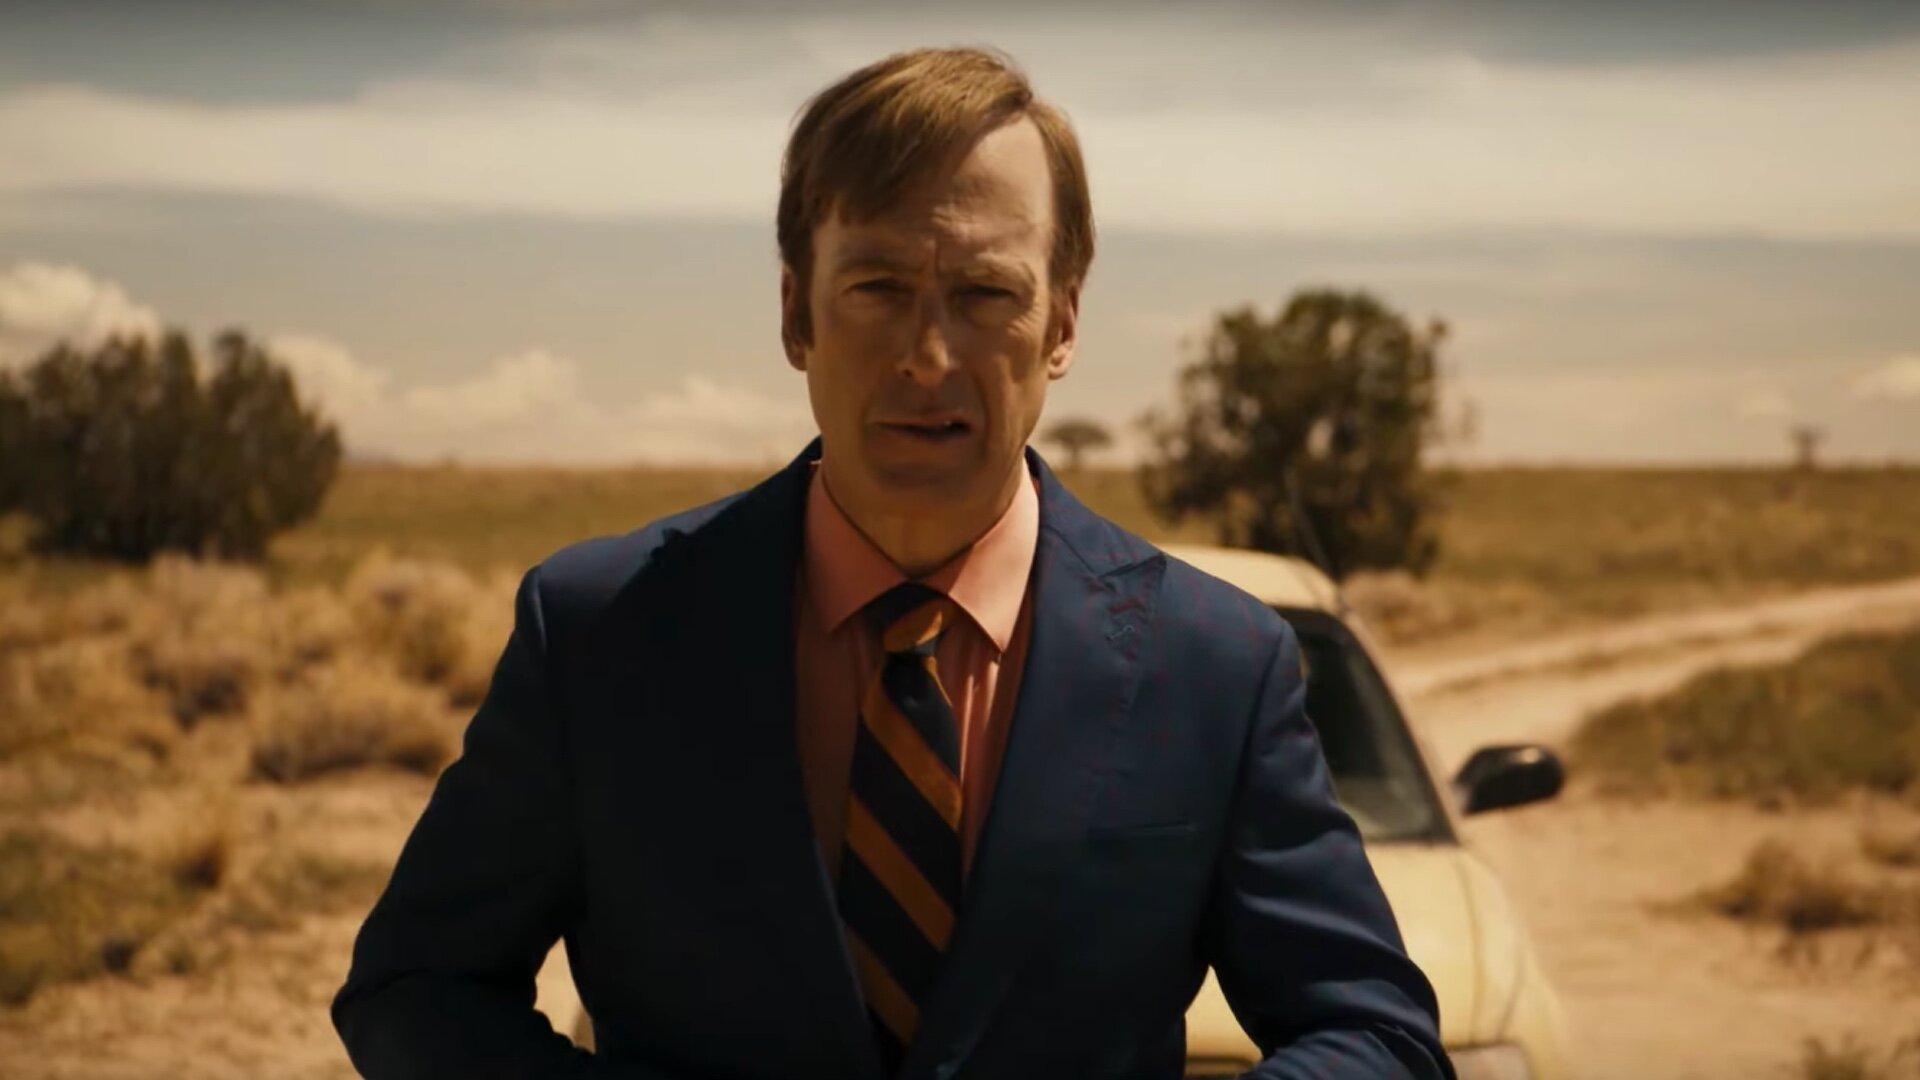 Better Call Saul Season 6: Expected Release Date, Plot, Cast & Characters